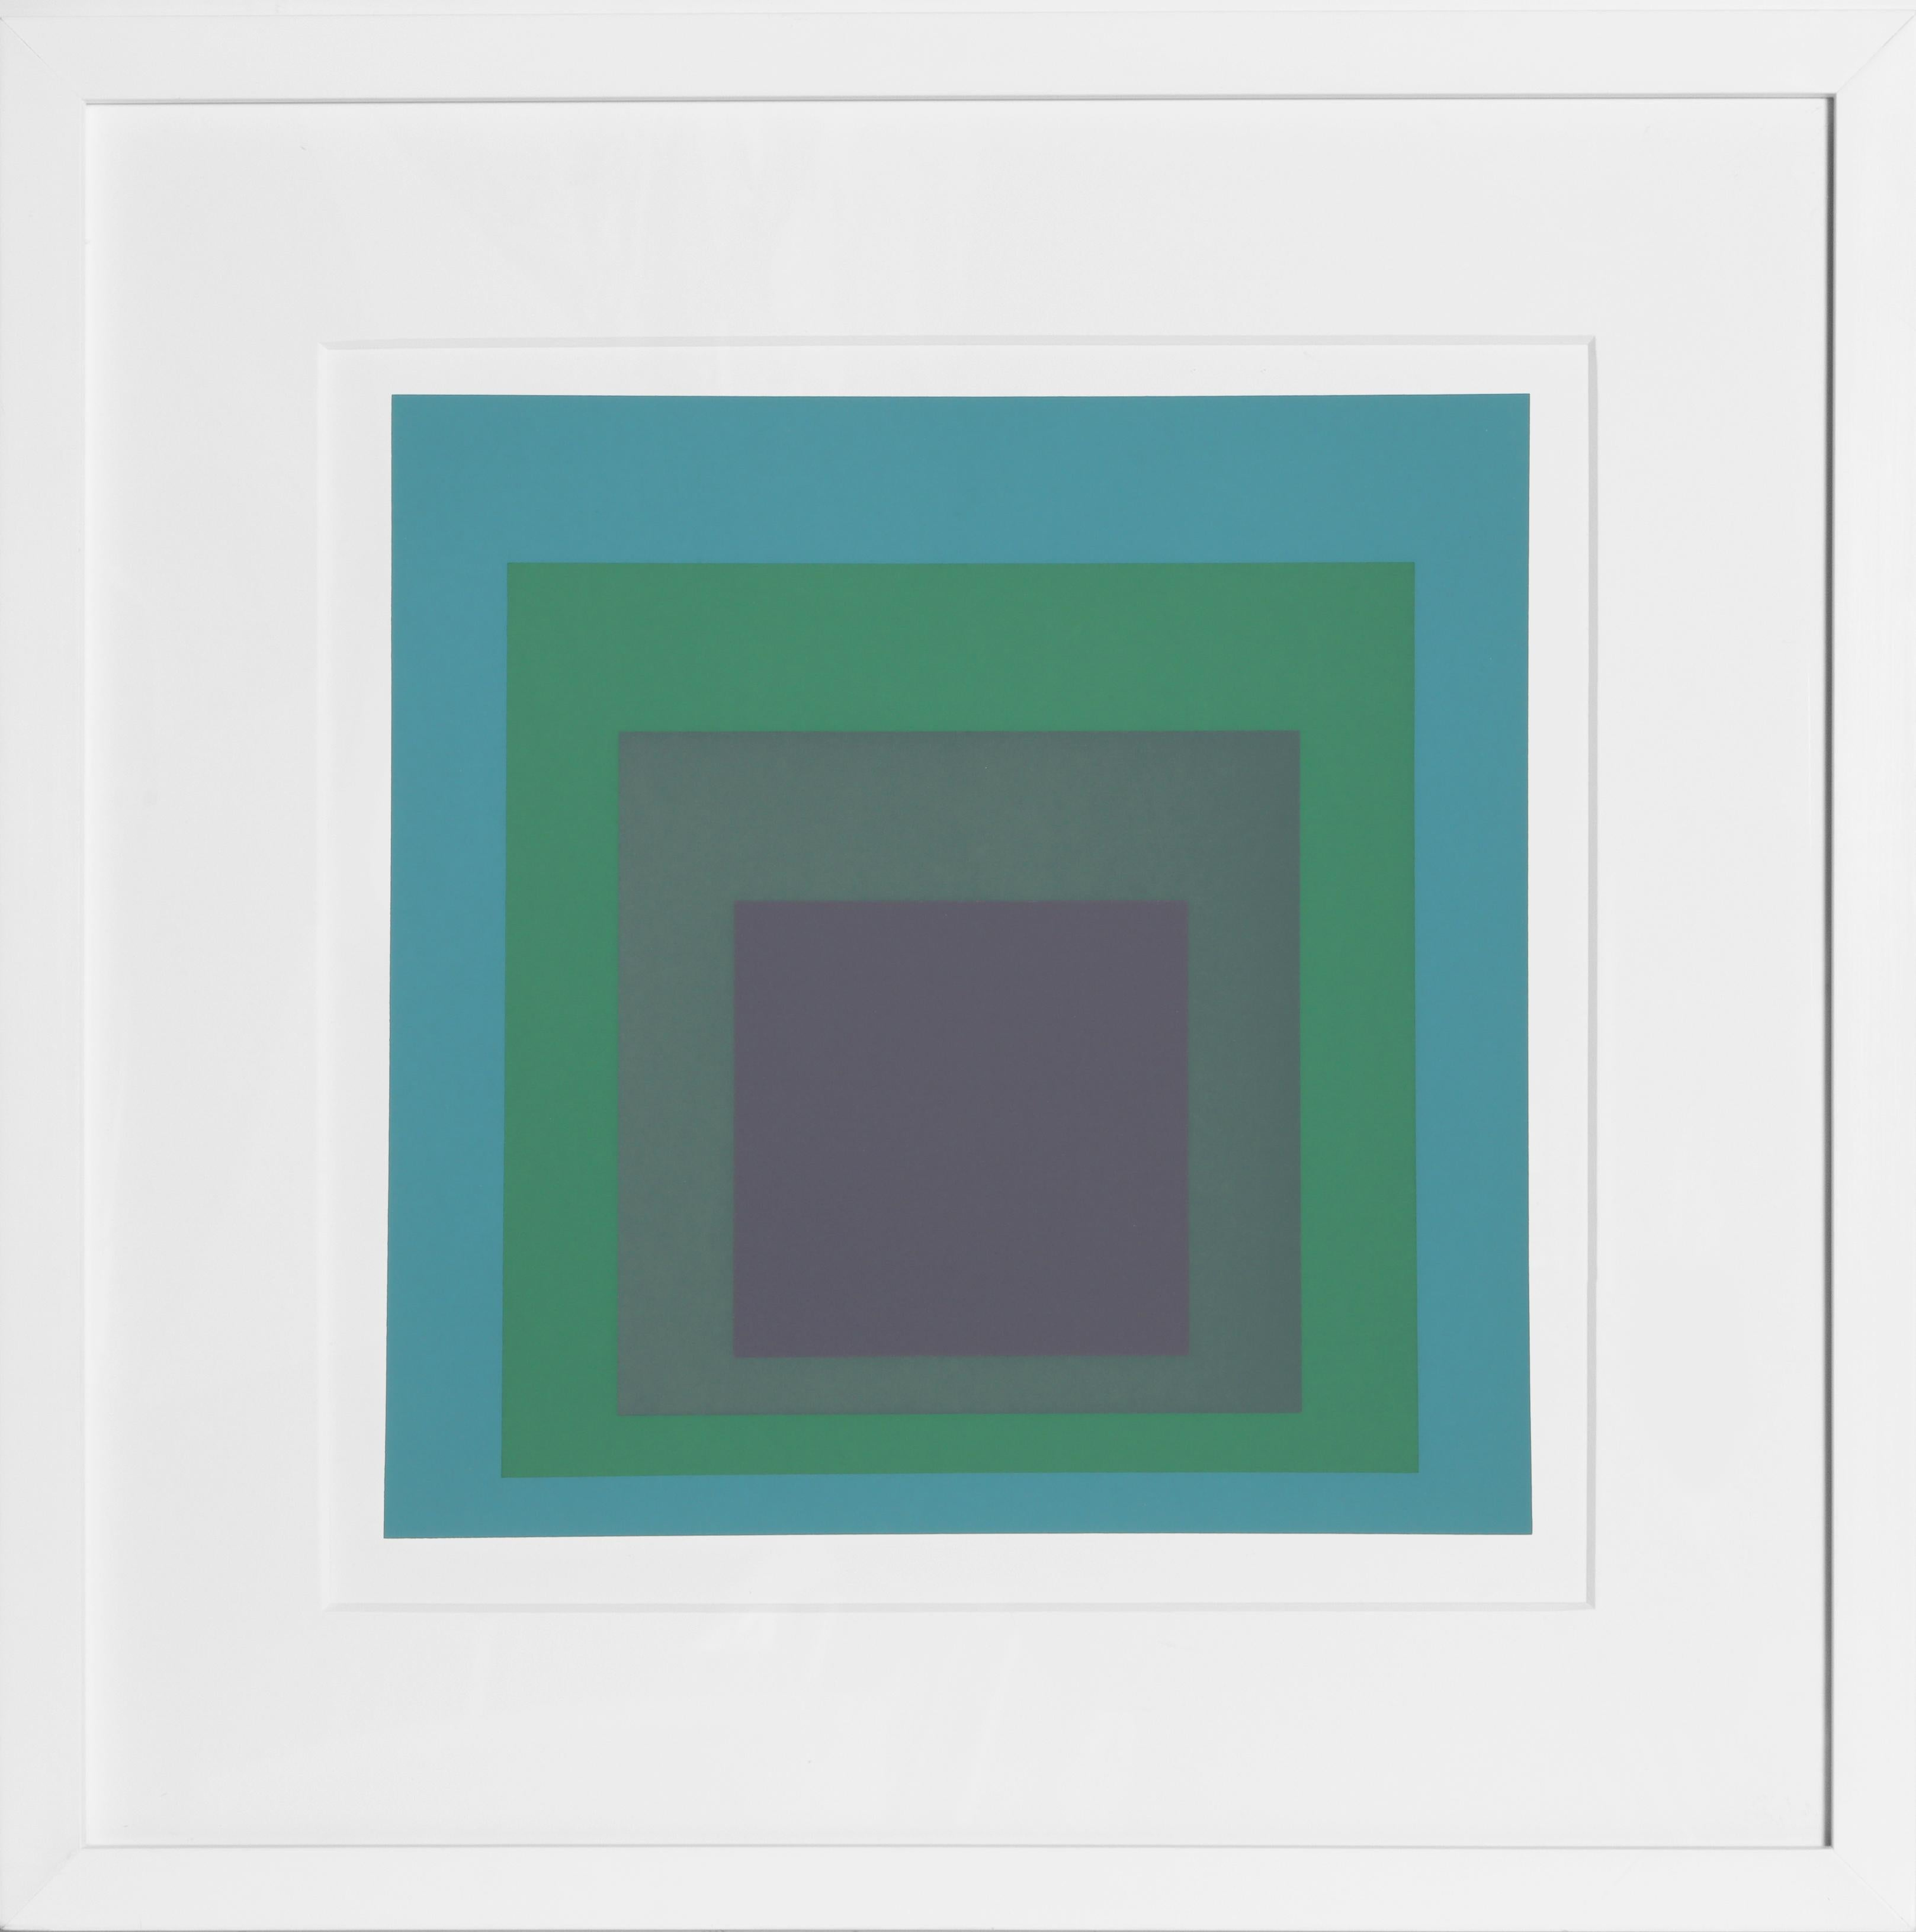 Homage to the Square from Formulation: Articulation